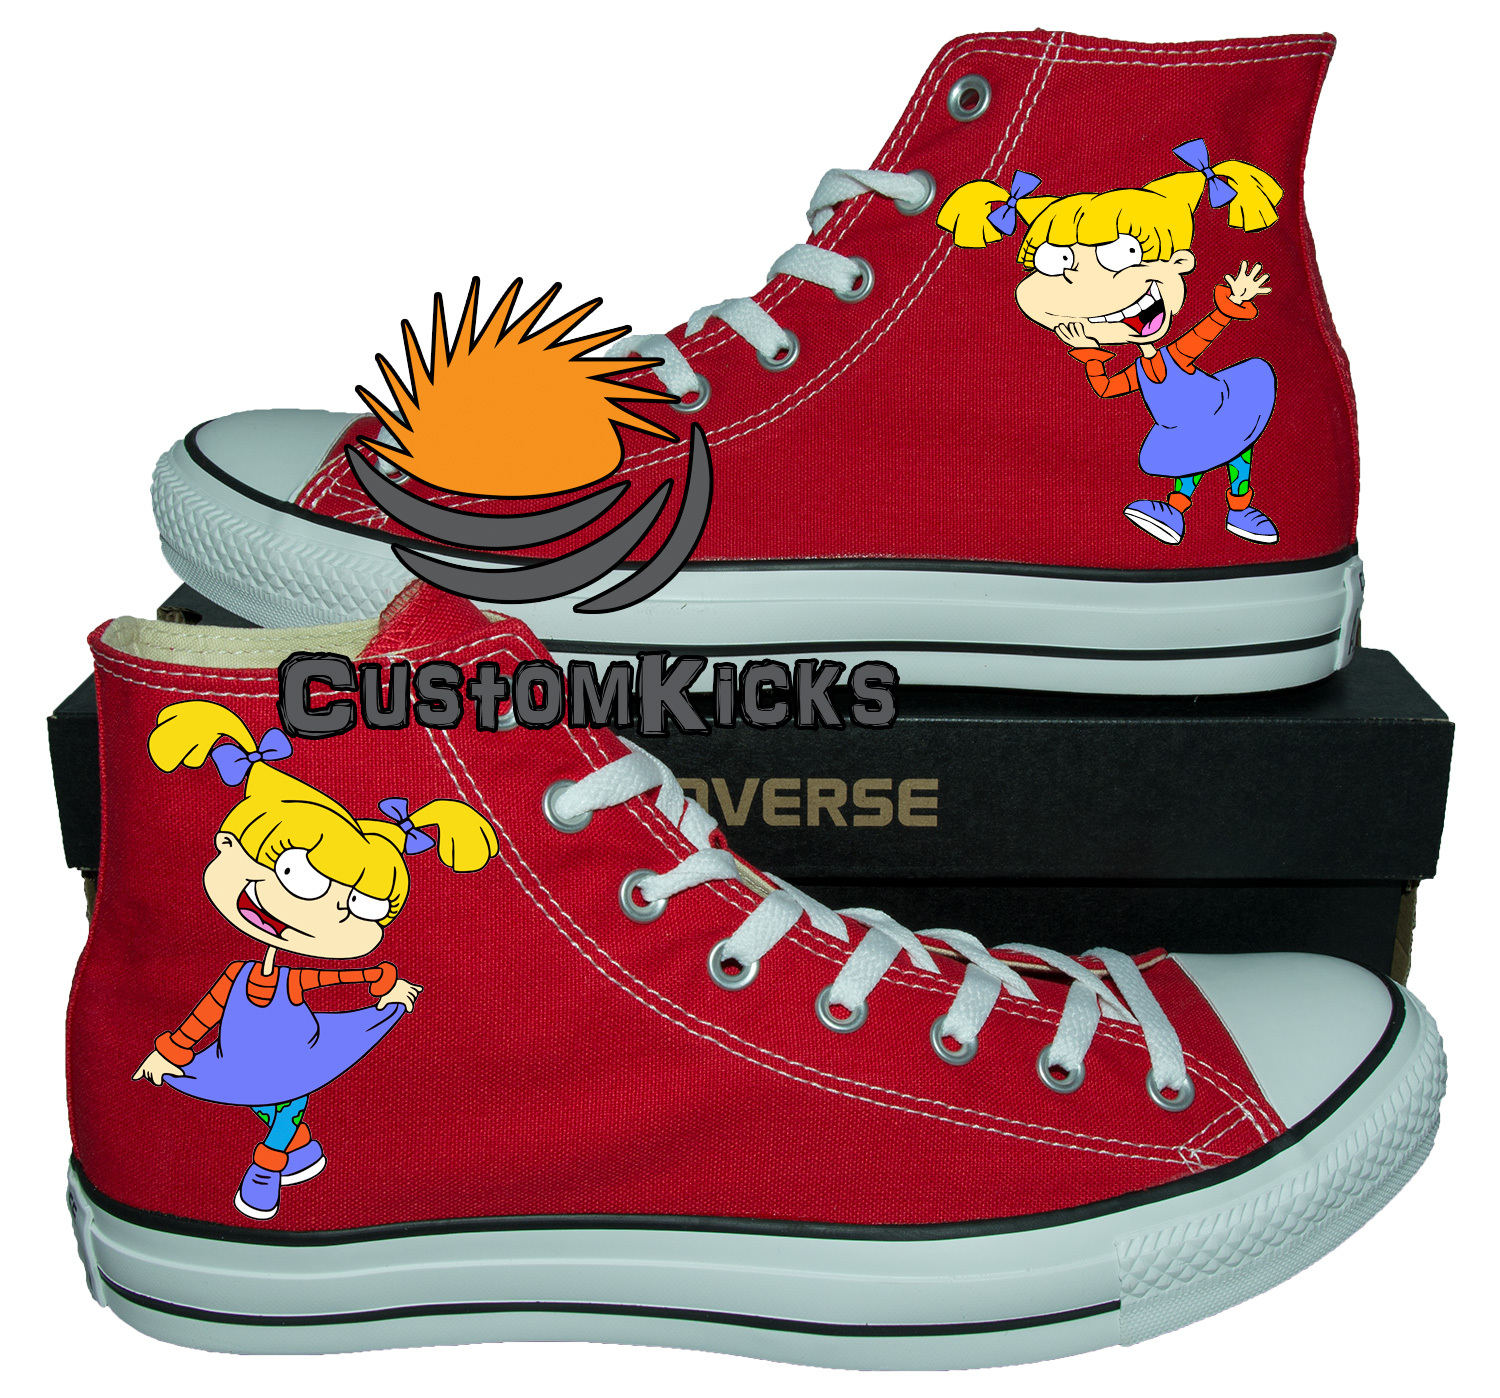 Painted converse sneakers, Rugrats, Angelica, Handpainted shoes, red converse